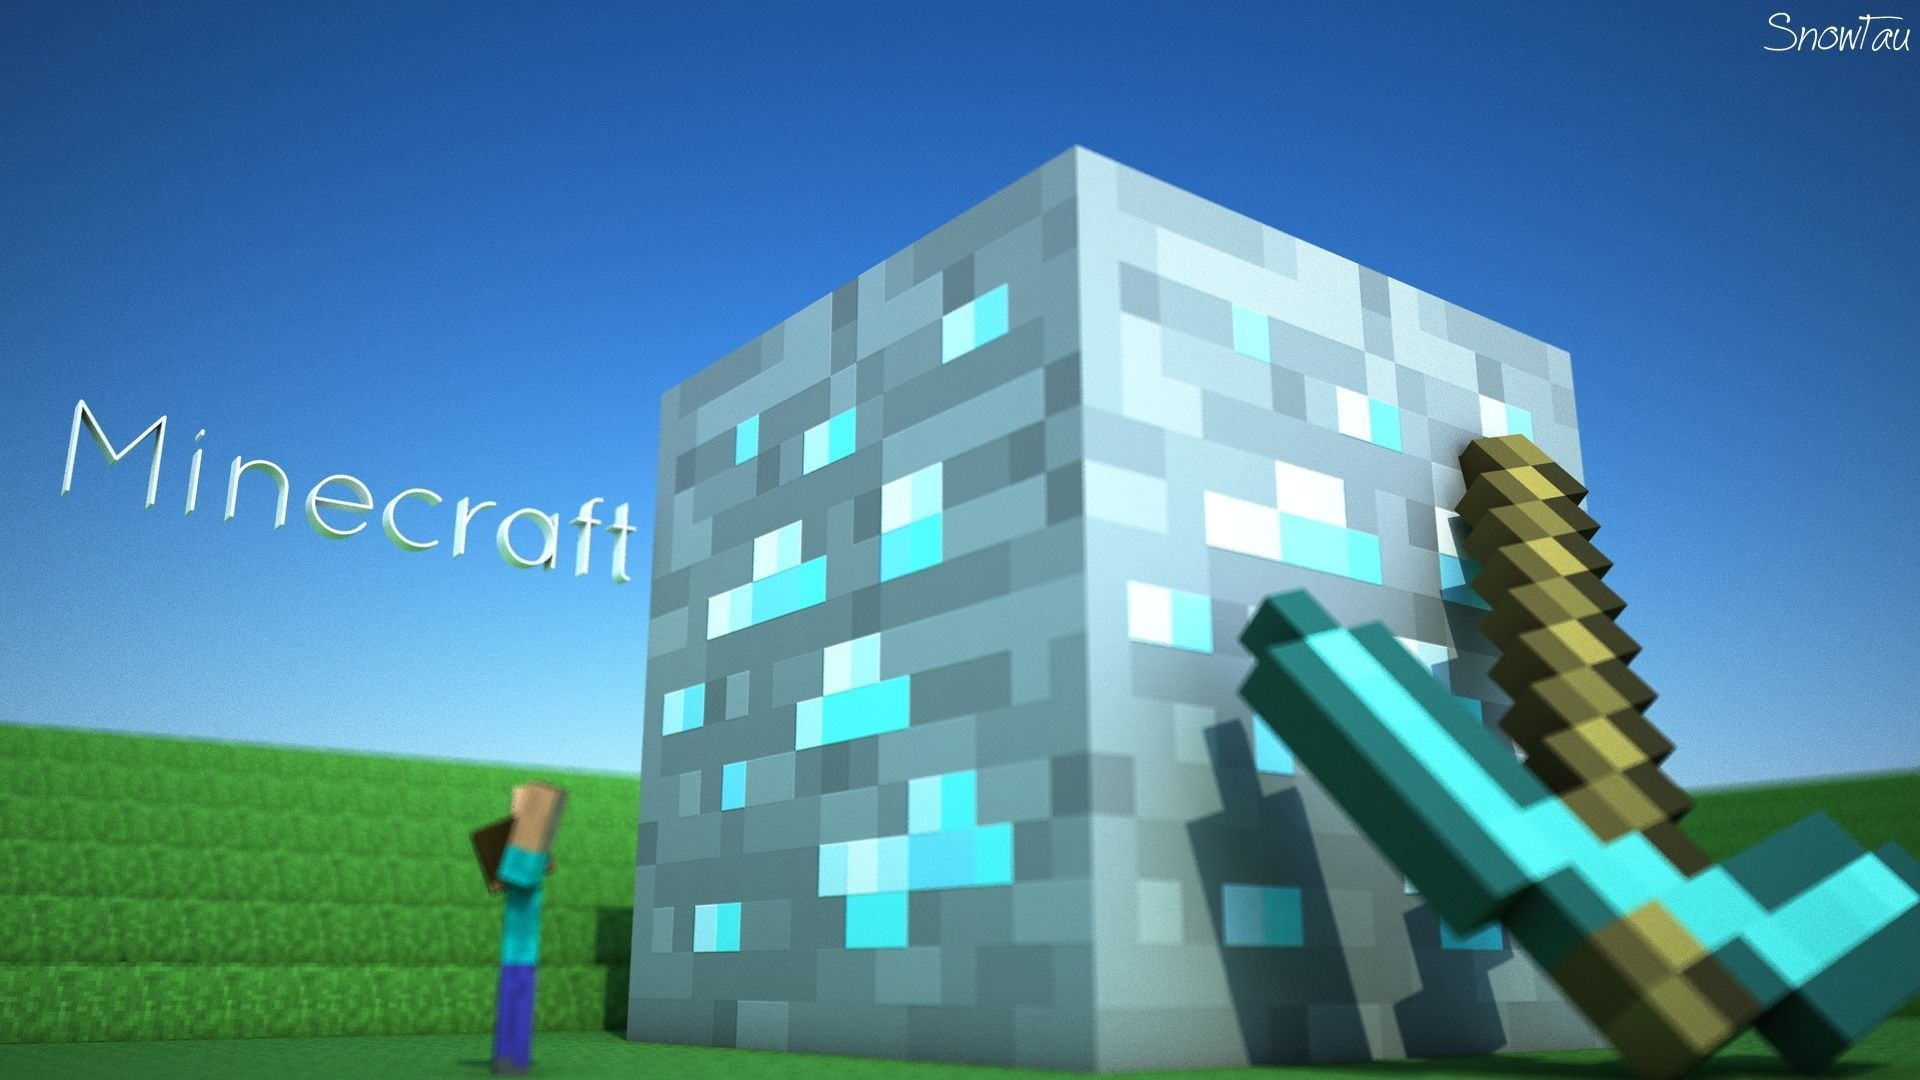 Wonderful Wallpaper Minecraft Windows 7 - 9163162c5da6b7a1c11973442c4932b6  Picture_65117.jpg